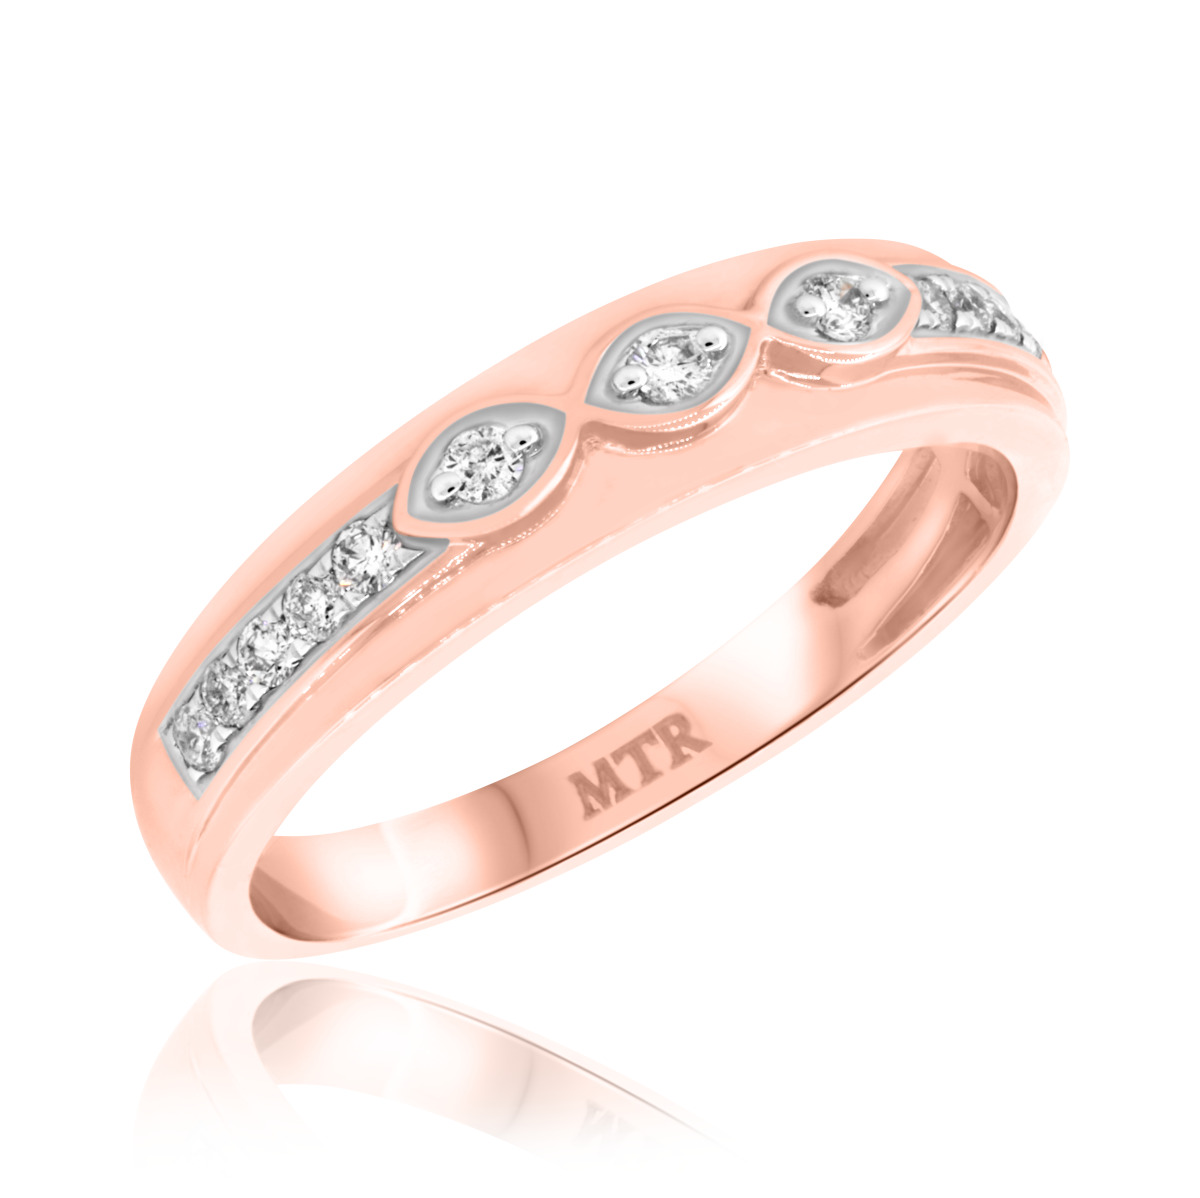 1/4 Carat T.W. Diamond Mens Wedding Band  10K Rose Gold